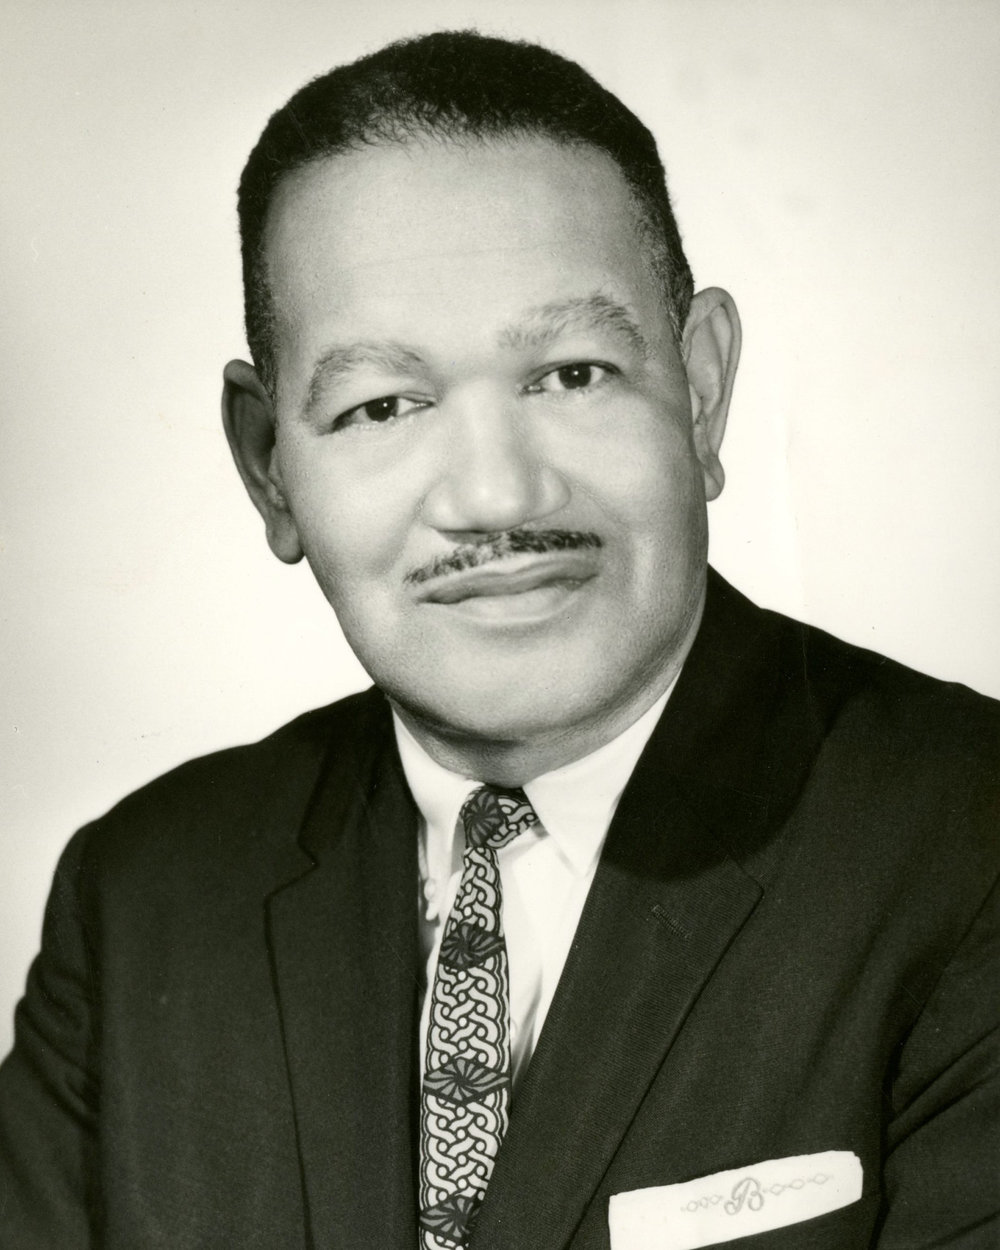 Dr. Girard T. Bryant